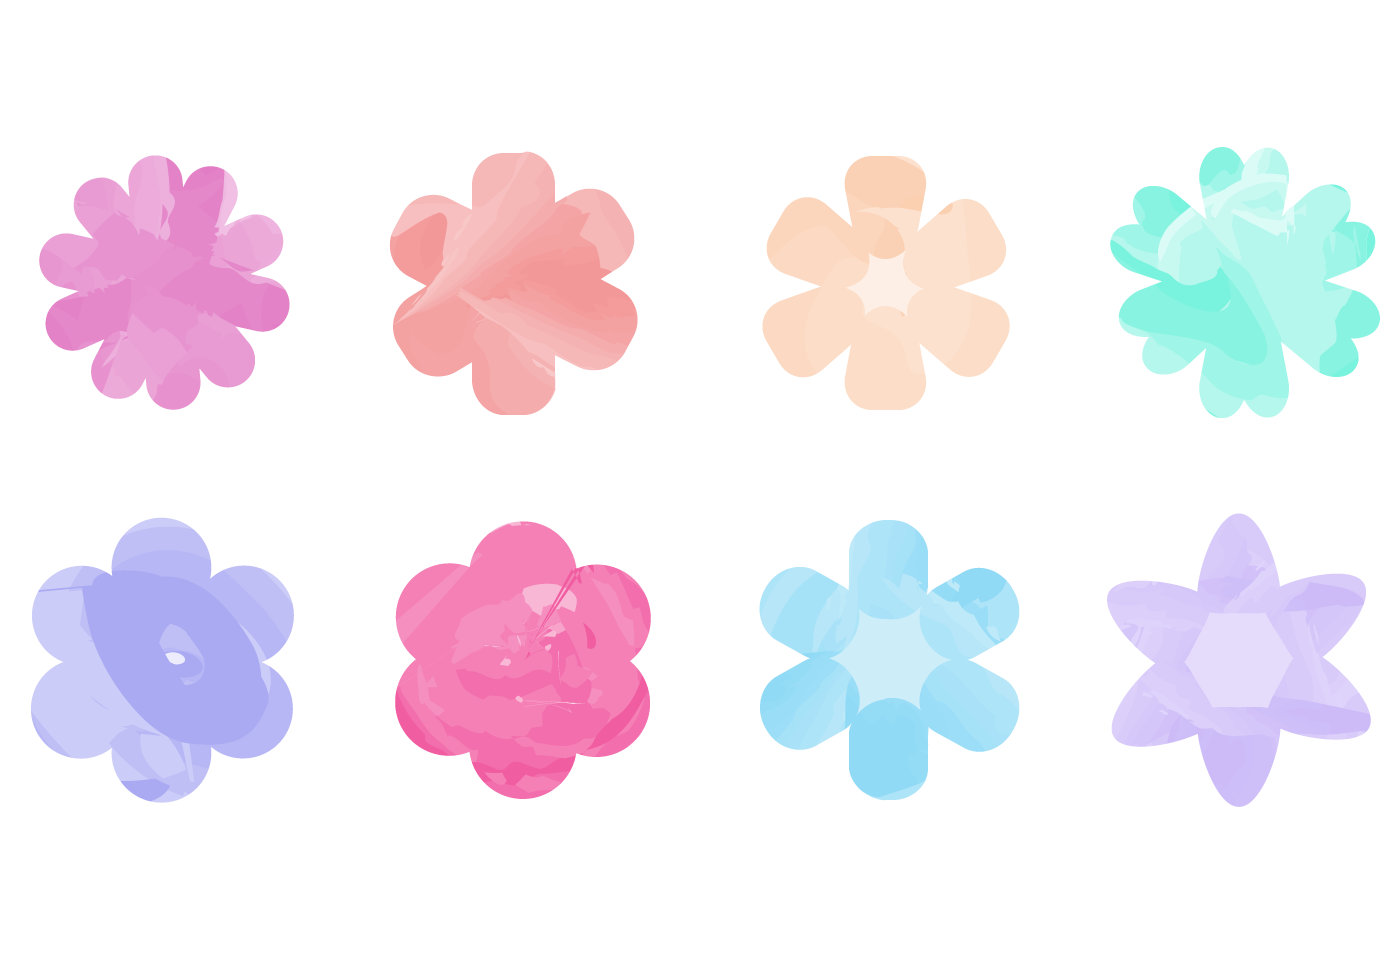 Free Download Floral Flowers Watercolor Simple Images